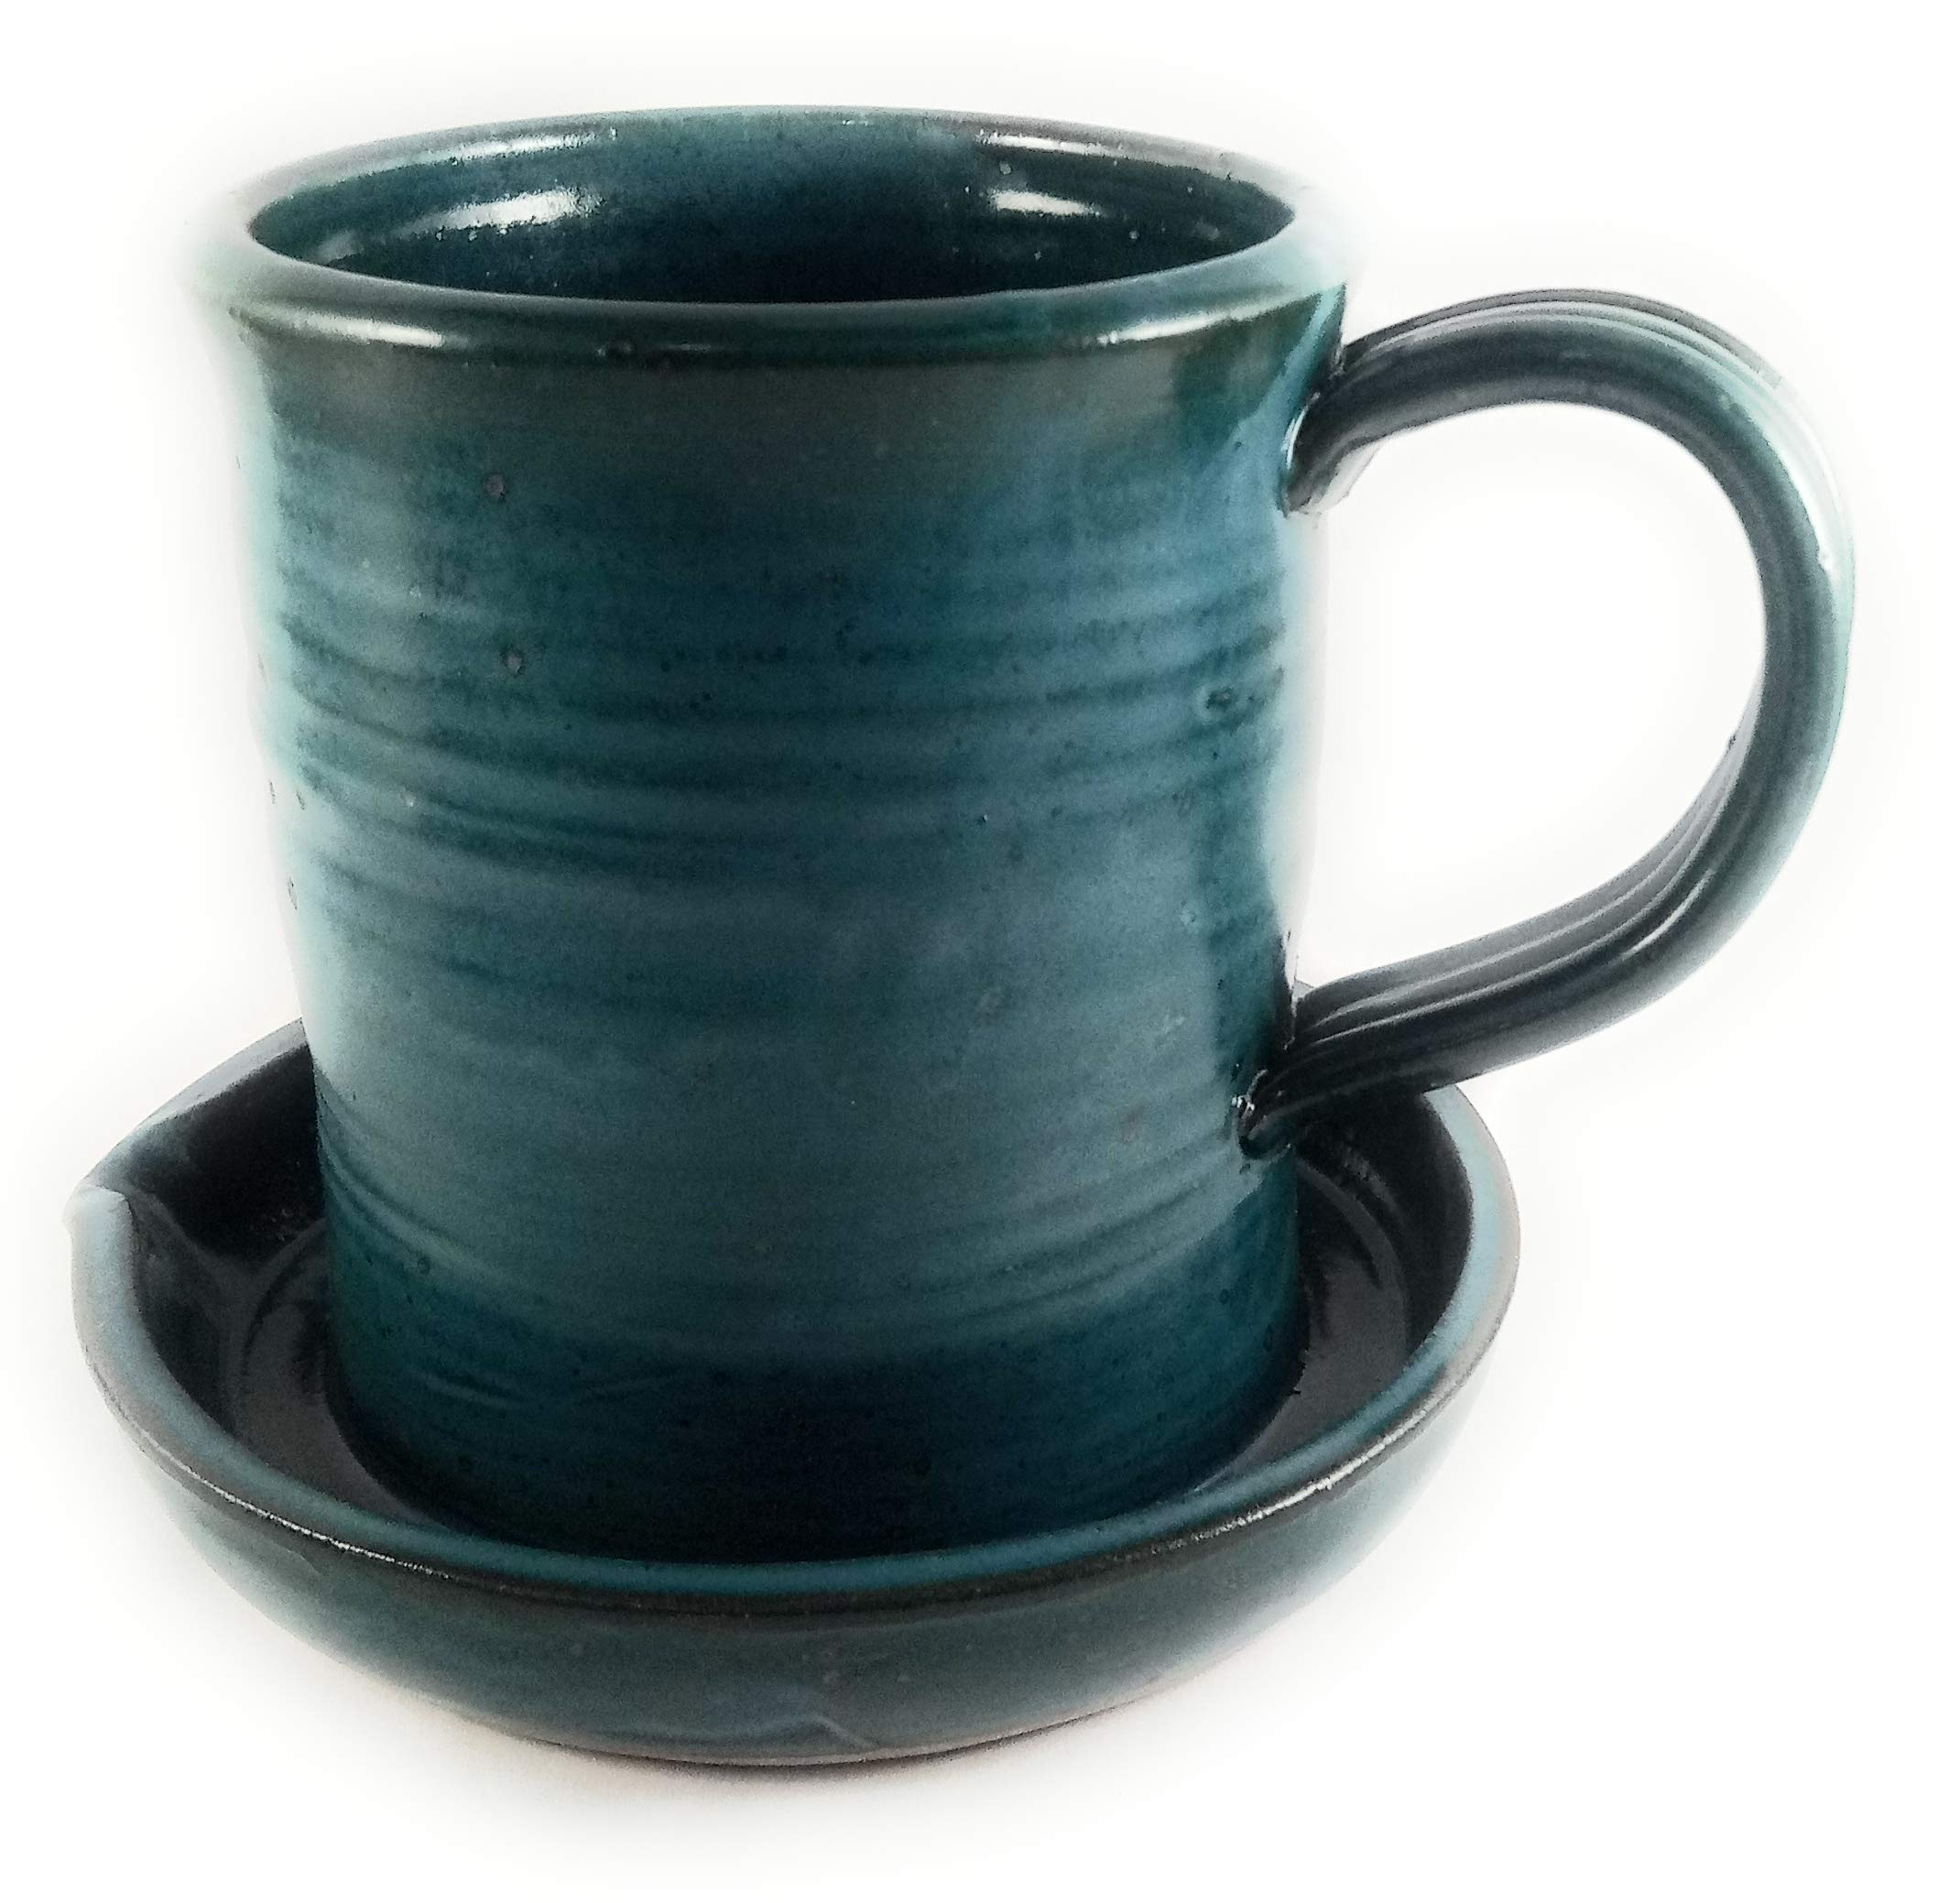 Teal Bacon Cooker, Heavy Hand Made Durable Pottery, Unique New Way of Cooking Bacon to Remove Fat, Microwave and Dishwasher Safe, Easy Clean Up - Great for Dorms, RV, Travel, Home, ect